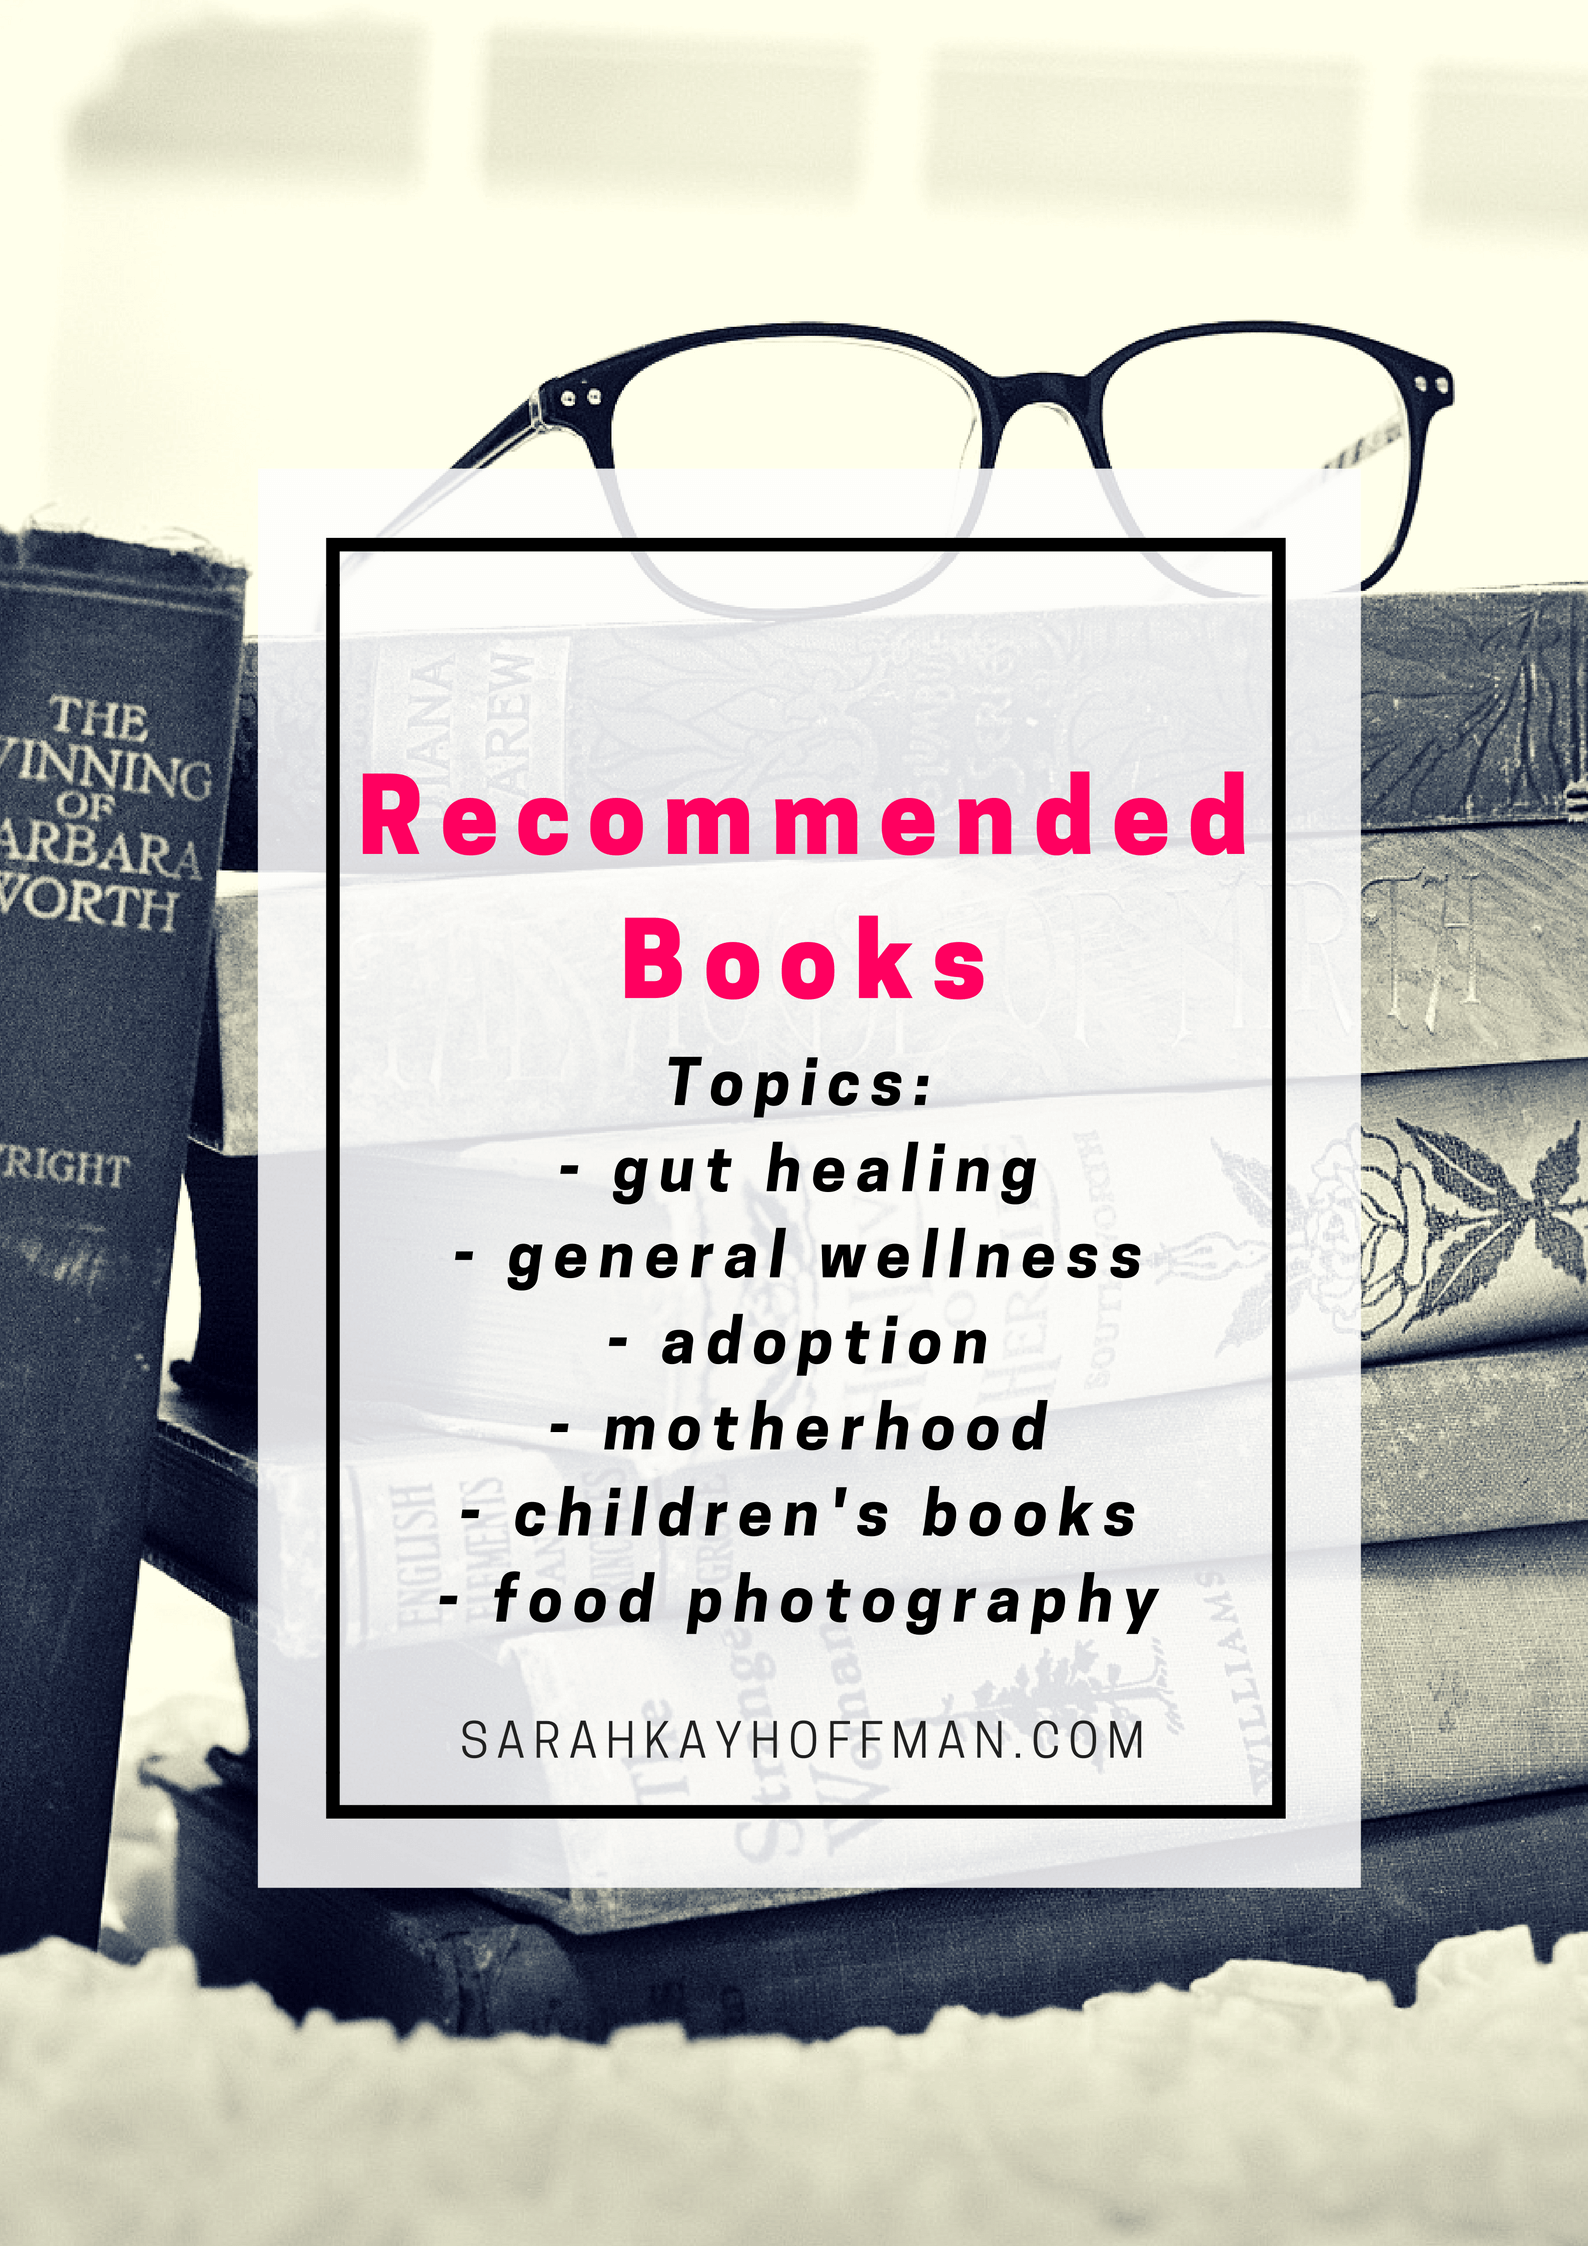 Recommended Books sarahkayhoffman.com A Reading Habit #book #books #healthyliving #healthylifestyle #lifestyleblogger #bookclub